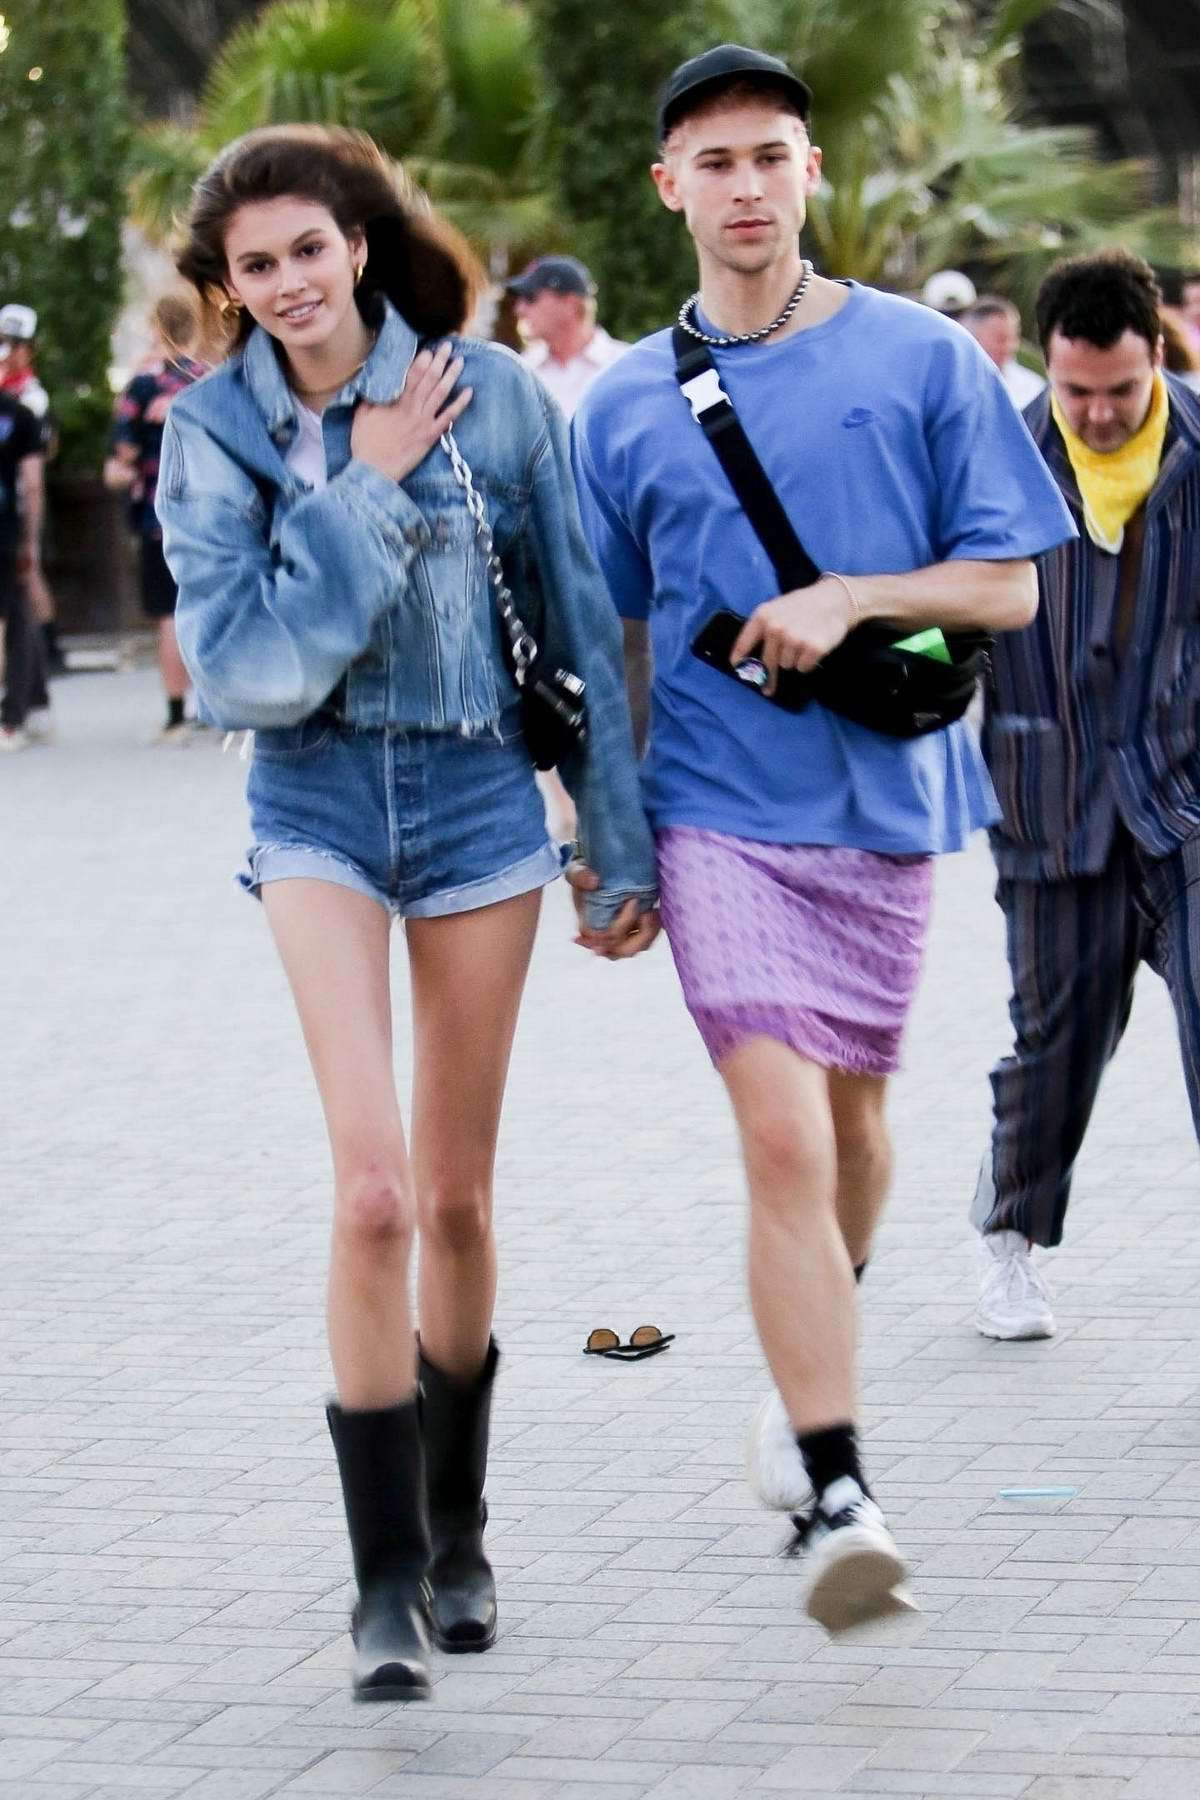 Kaia Gerber dons double denim while out and about with Tommy Dorfman at Coachella in Indio, California